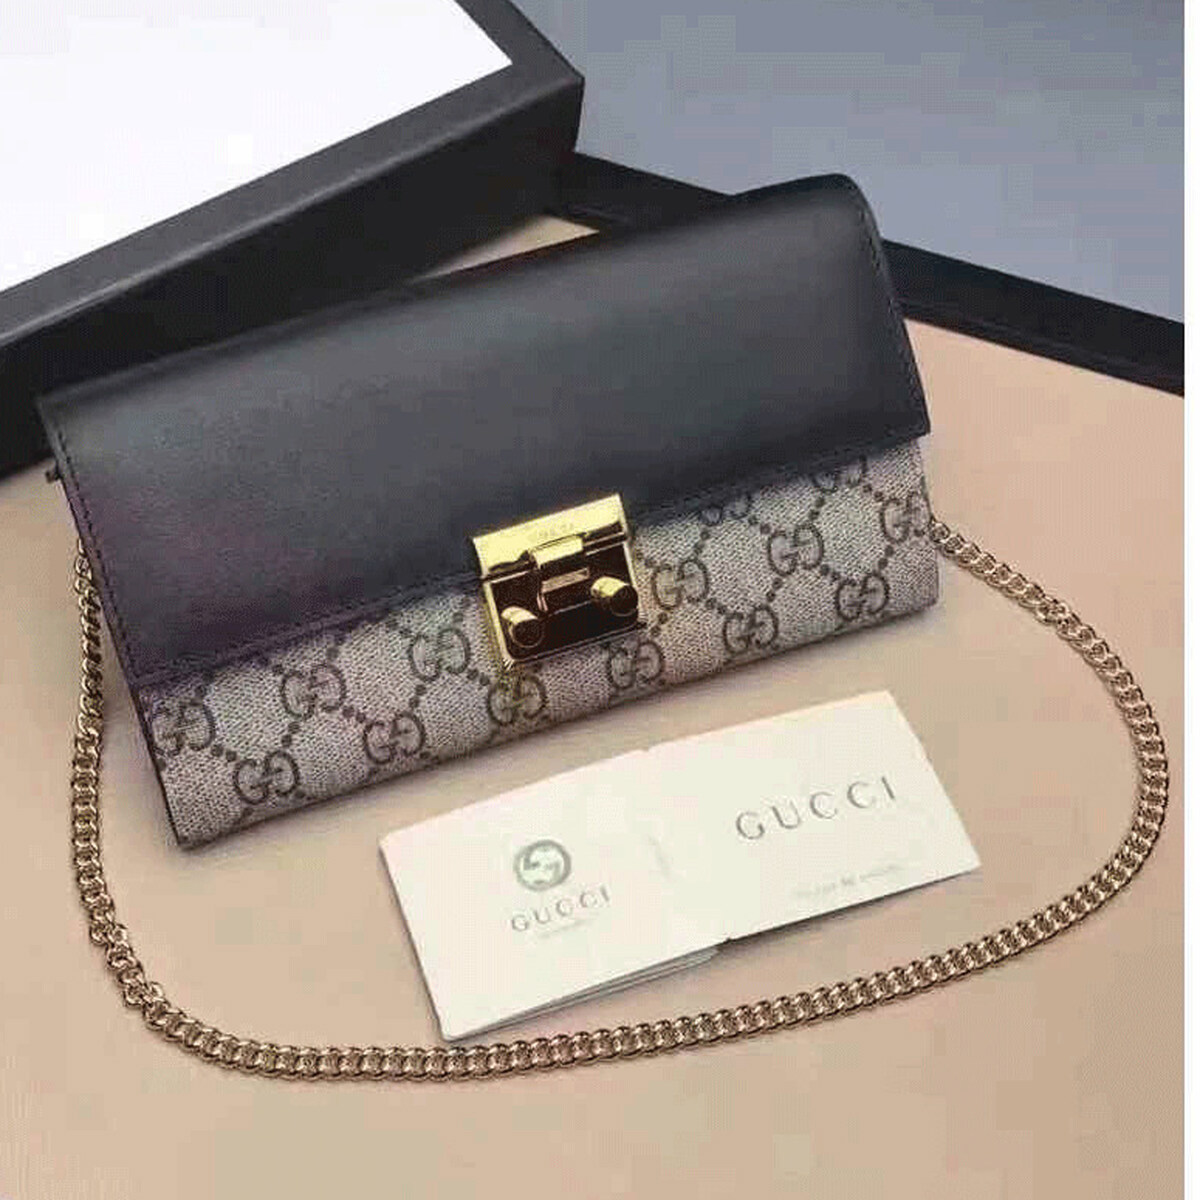 bb8bab07aa7d2f Gucci mini bag Padlock continental gucci wallet china aaa gucci wallet  cheap 453506